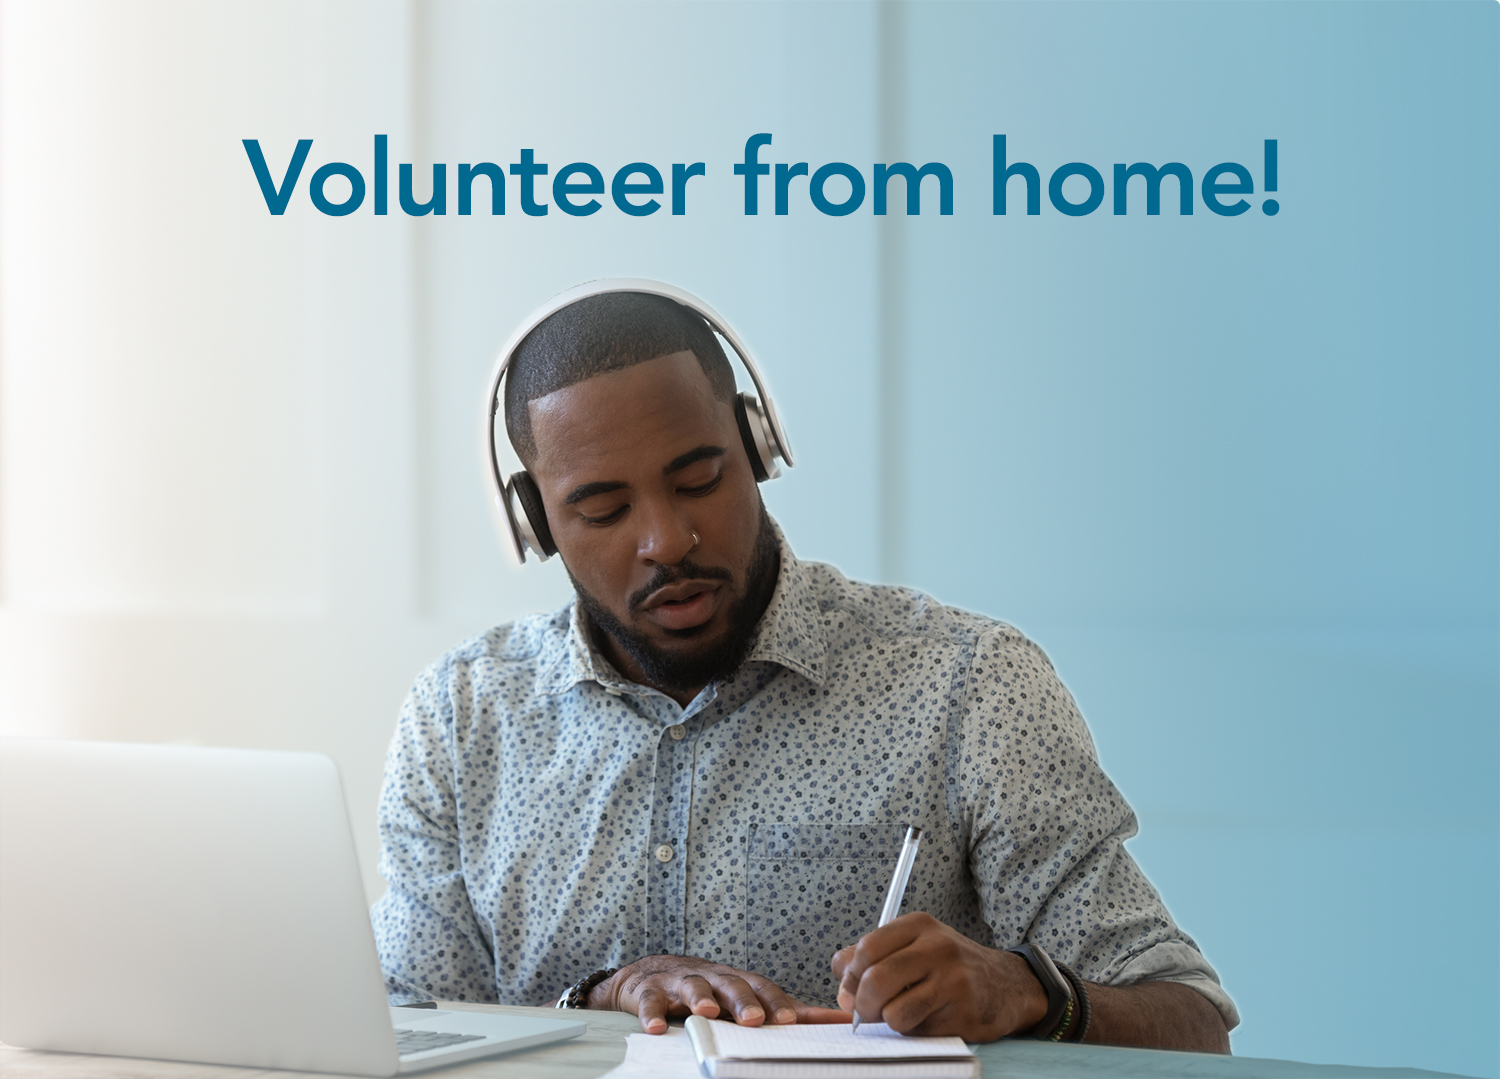 img des: person at home working on a laptop while taking notes. img text: Volunteer from home!